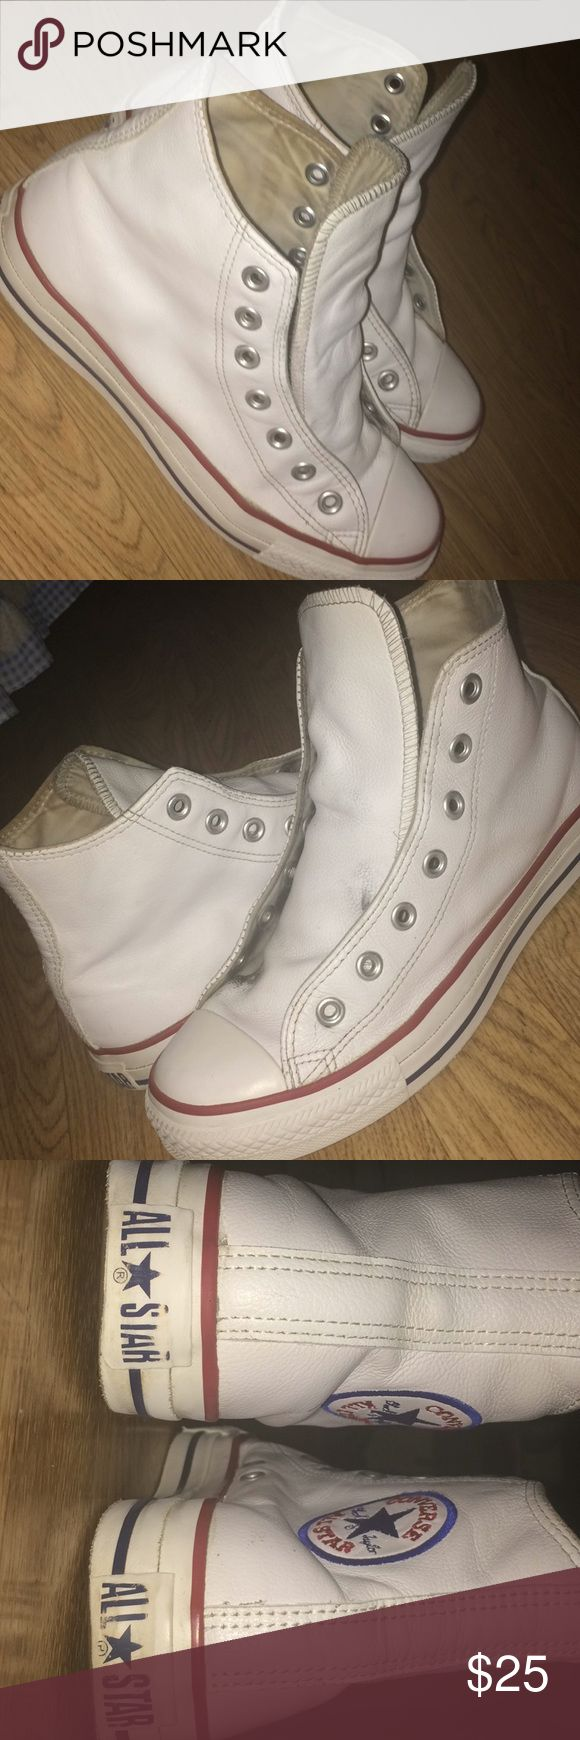 Converse High Tops Today we have some white authentic converse high tops. Only worn a few times but I'm no longer interested in the style so I decided to sell. Almost like new, 8.5/10 condition. **DISCLAIMER: THESE ARE LEATHER** Converse Shoes Sneakers